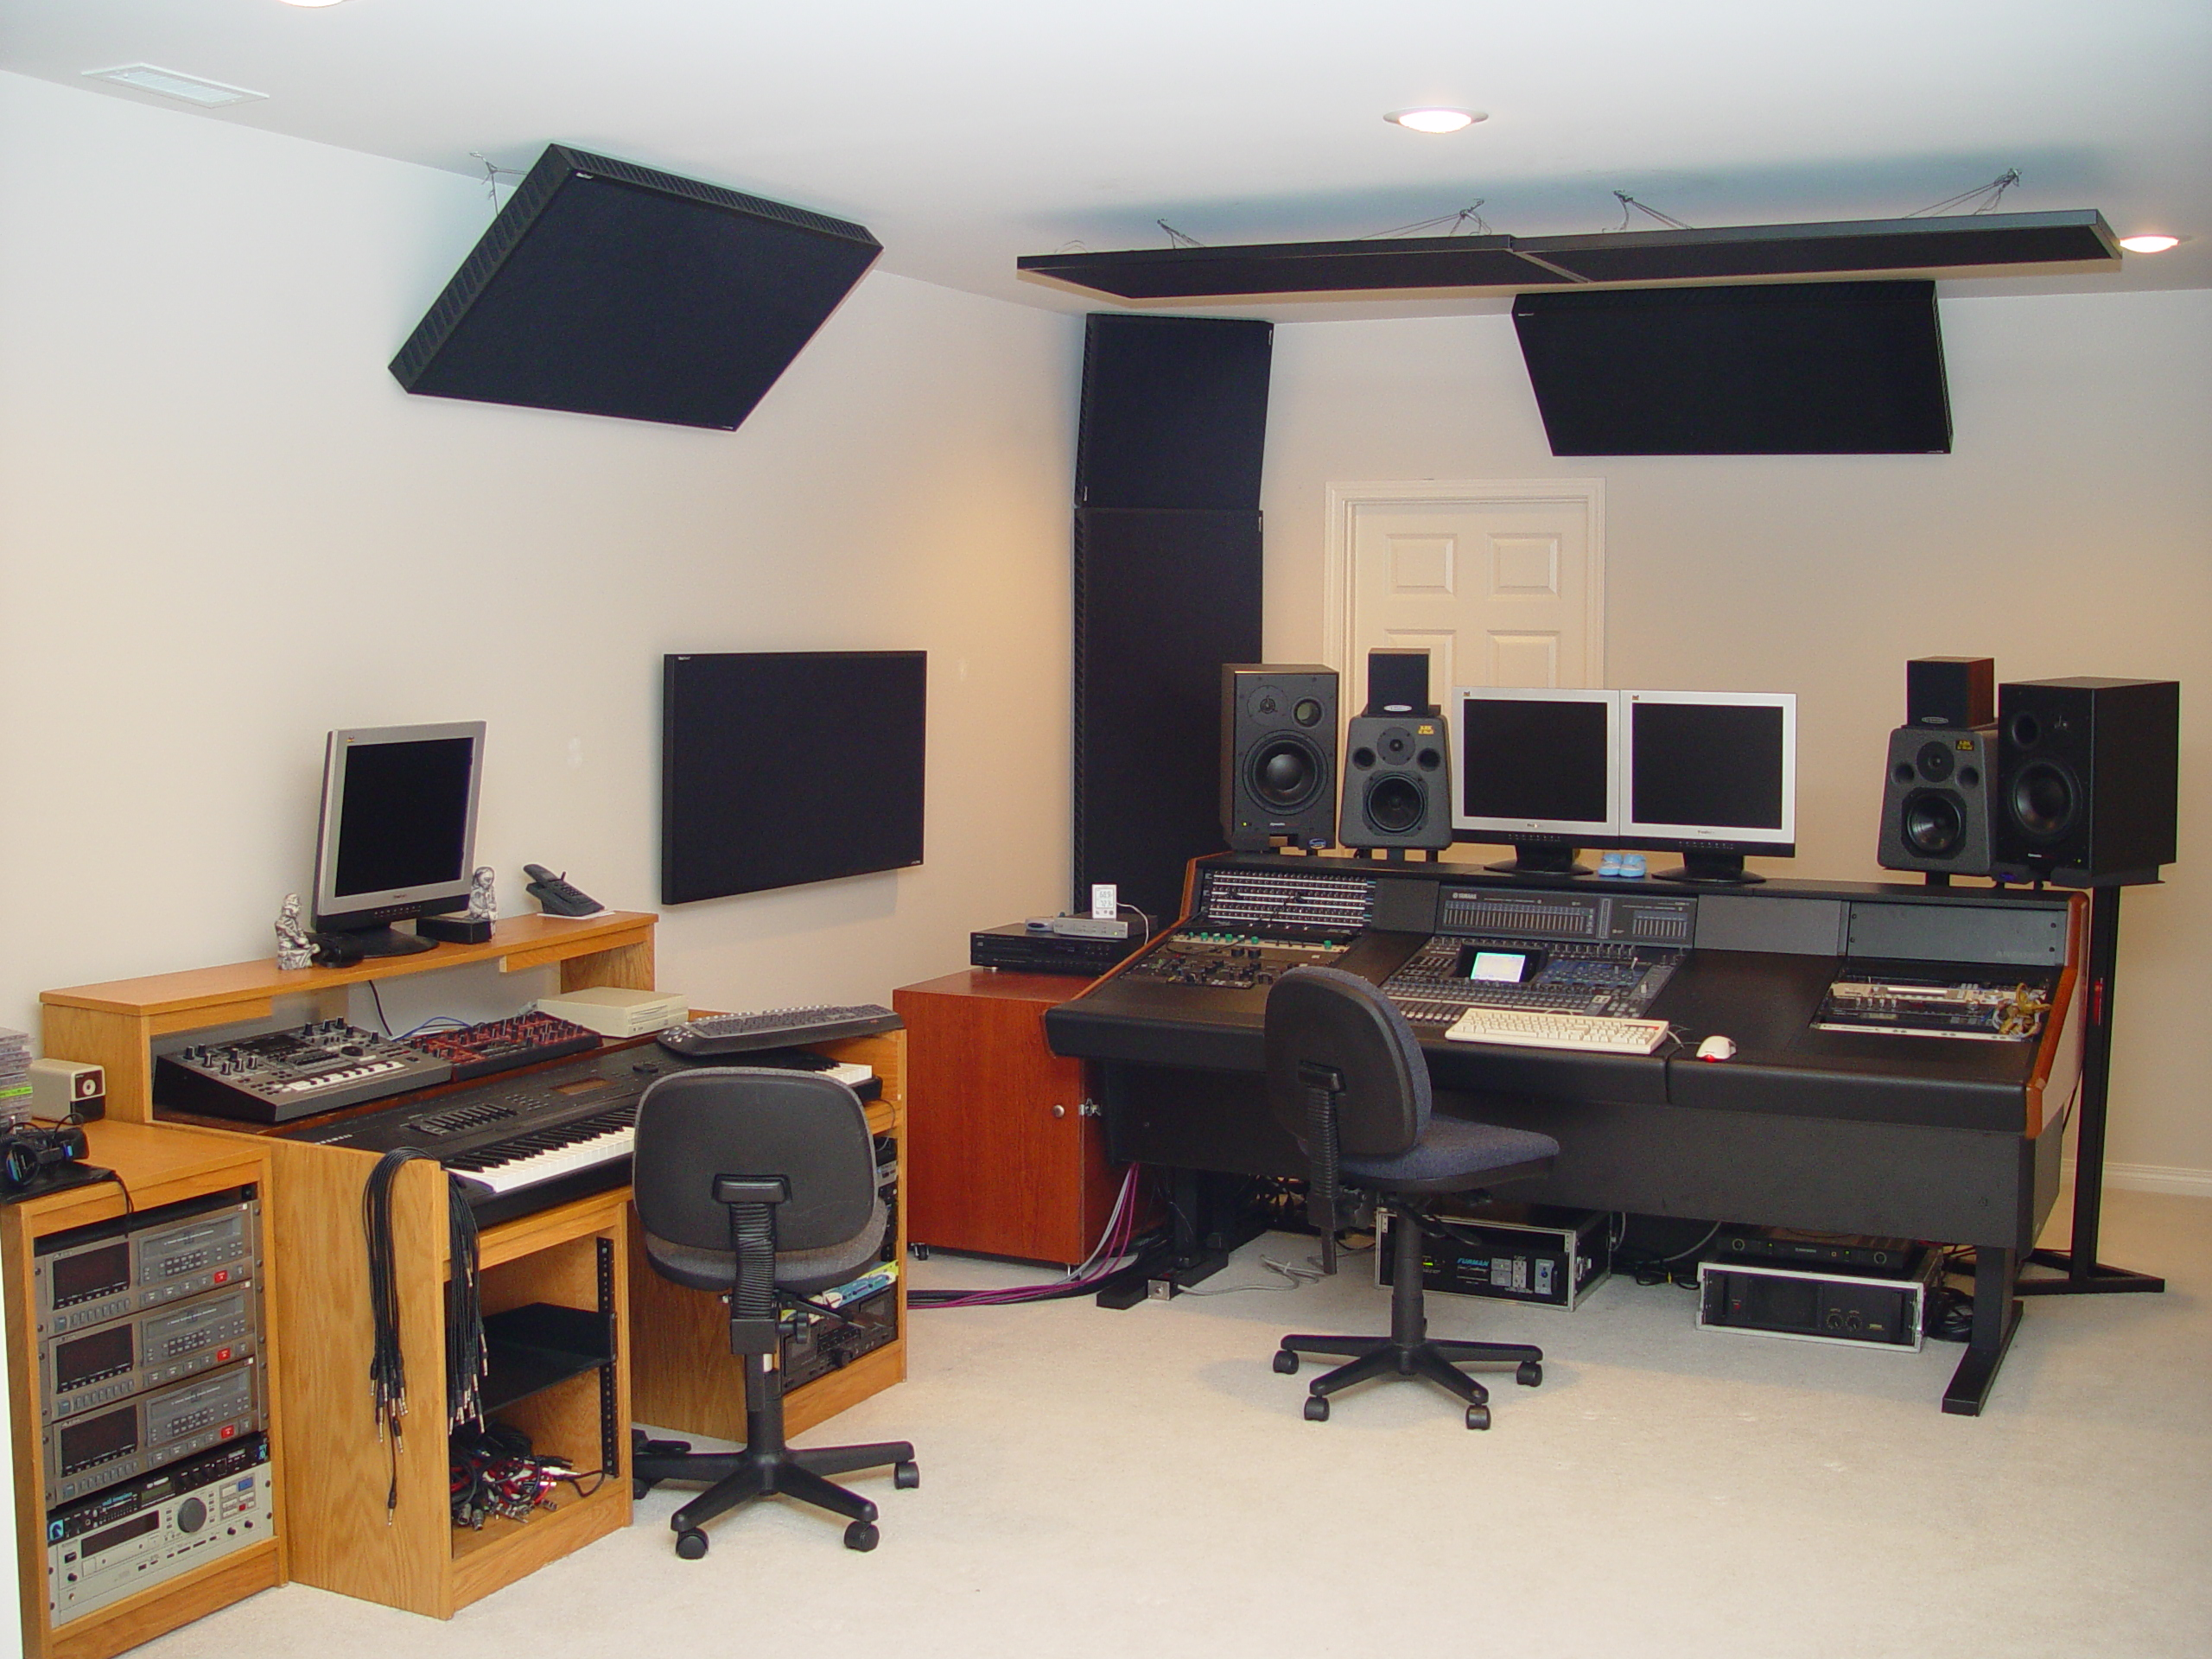 Issaquah Studio before the big remodel project